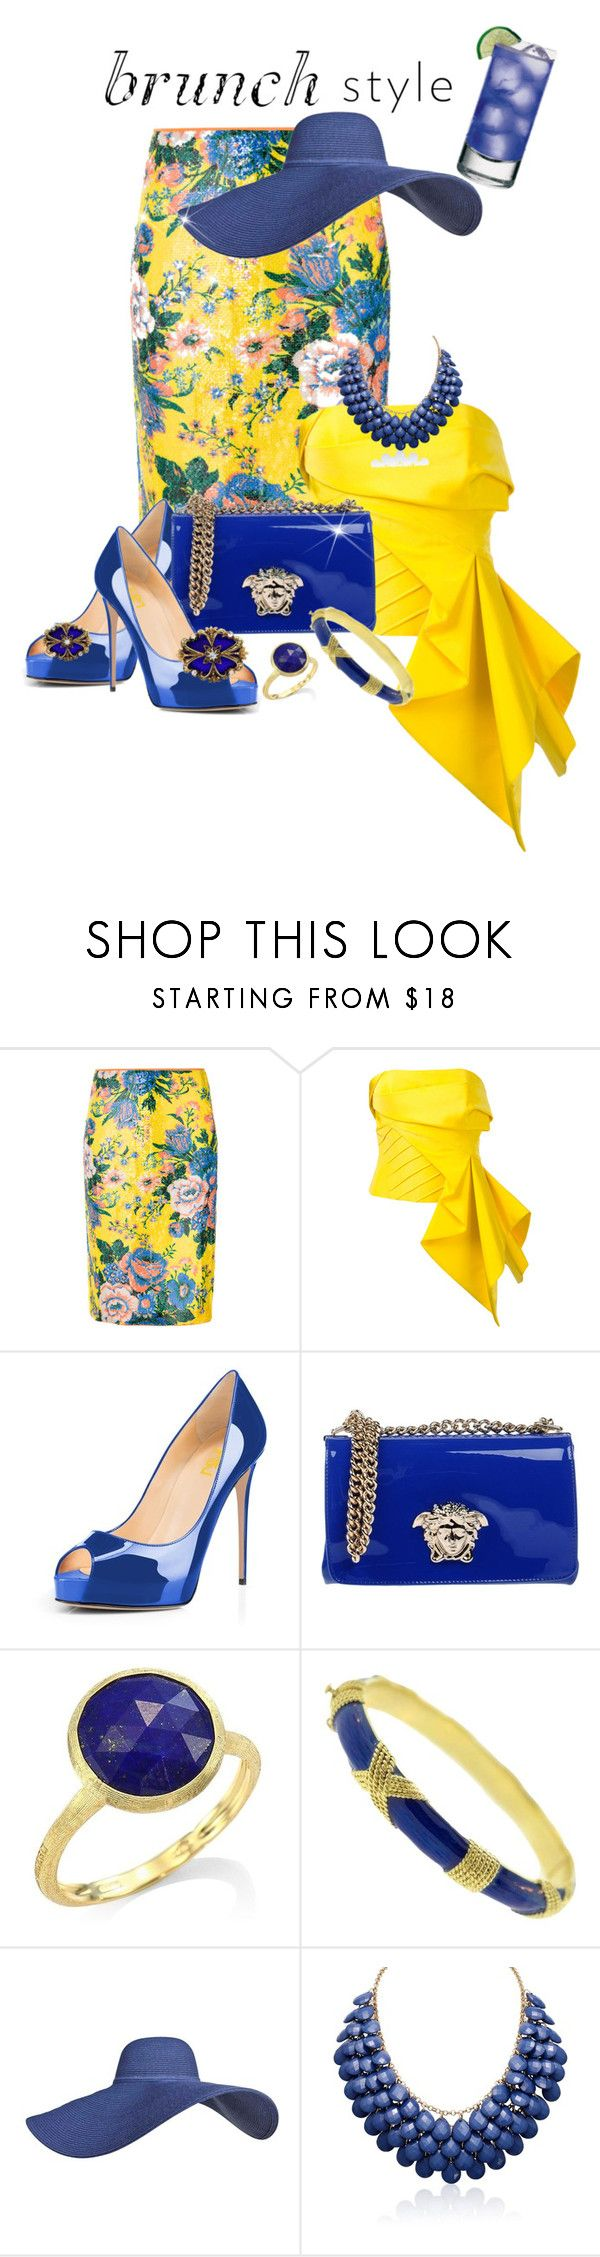 """Sunny Yellow"" by shamrockclover ❤ liked on Polyvore featuring Diane Von Furstenberg, Rubin Singer, Versace, Marco Bicego, Cartier and Adoriana"